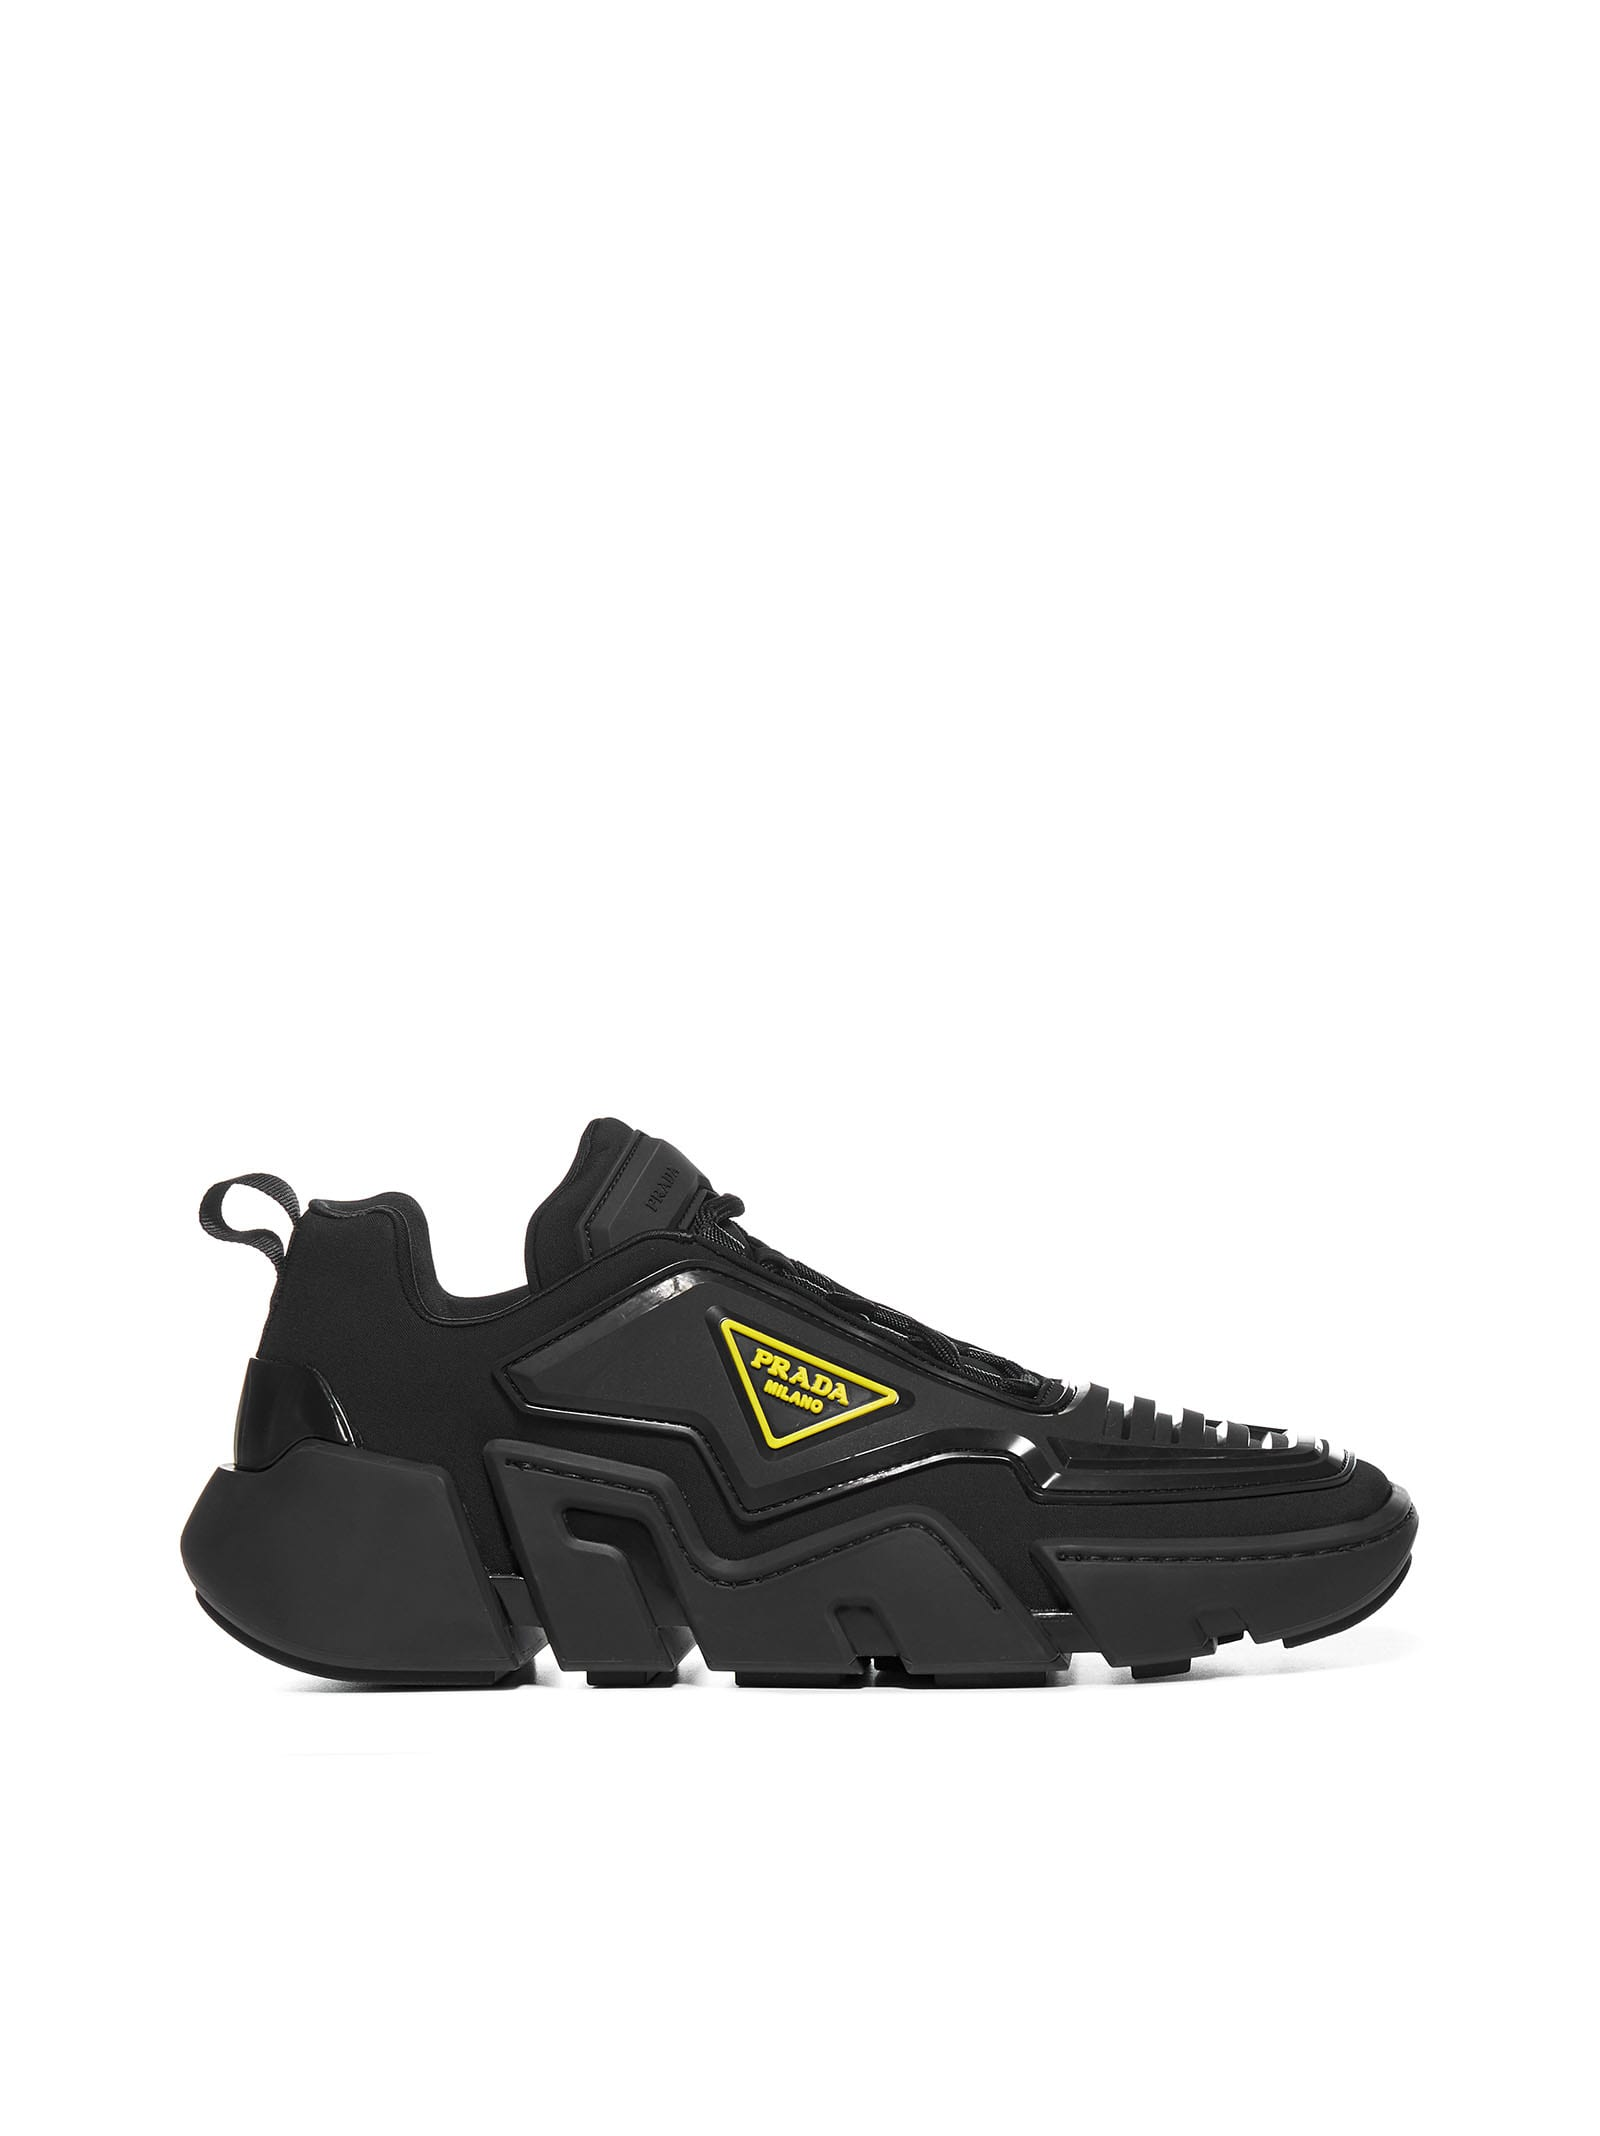 Prada Techno Stretch Fabric Sneakers